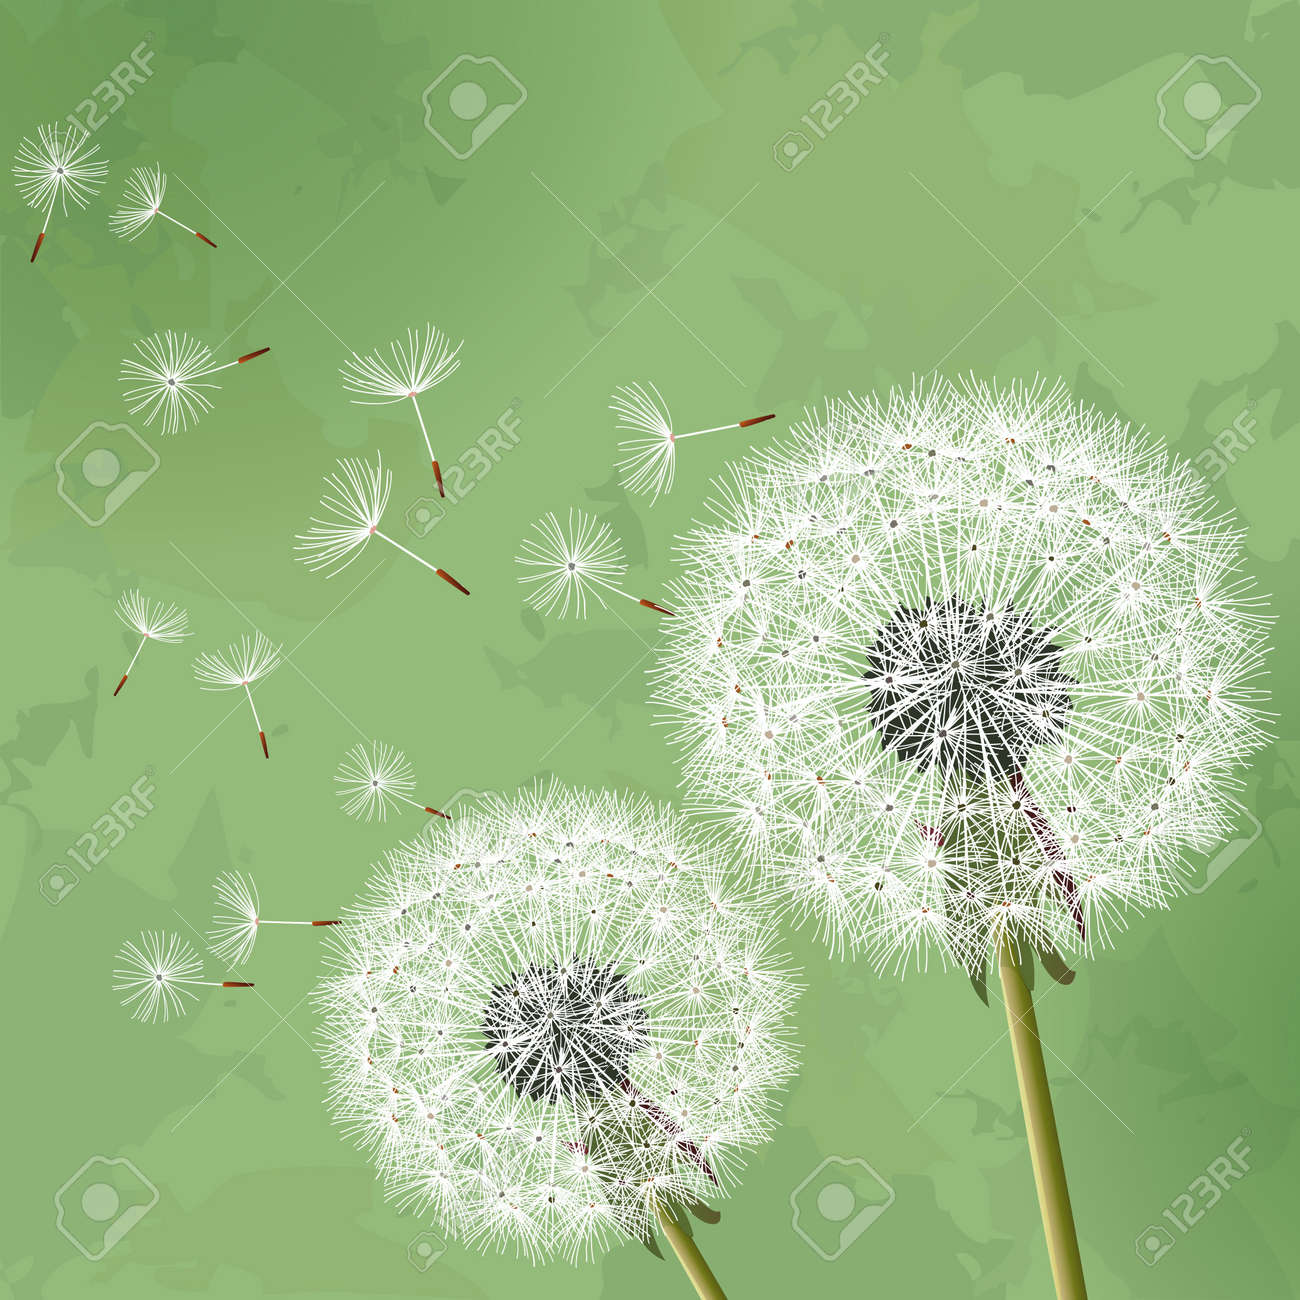 Floral vintage background - Floral Vintage Background Green With Two Flowers Dandelions Vector Illustration Stock Vector 19405500